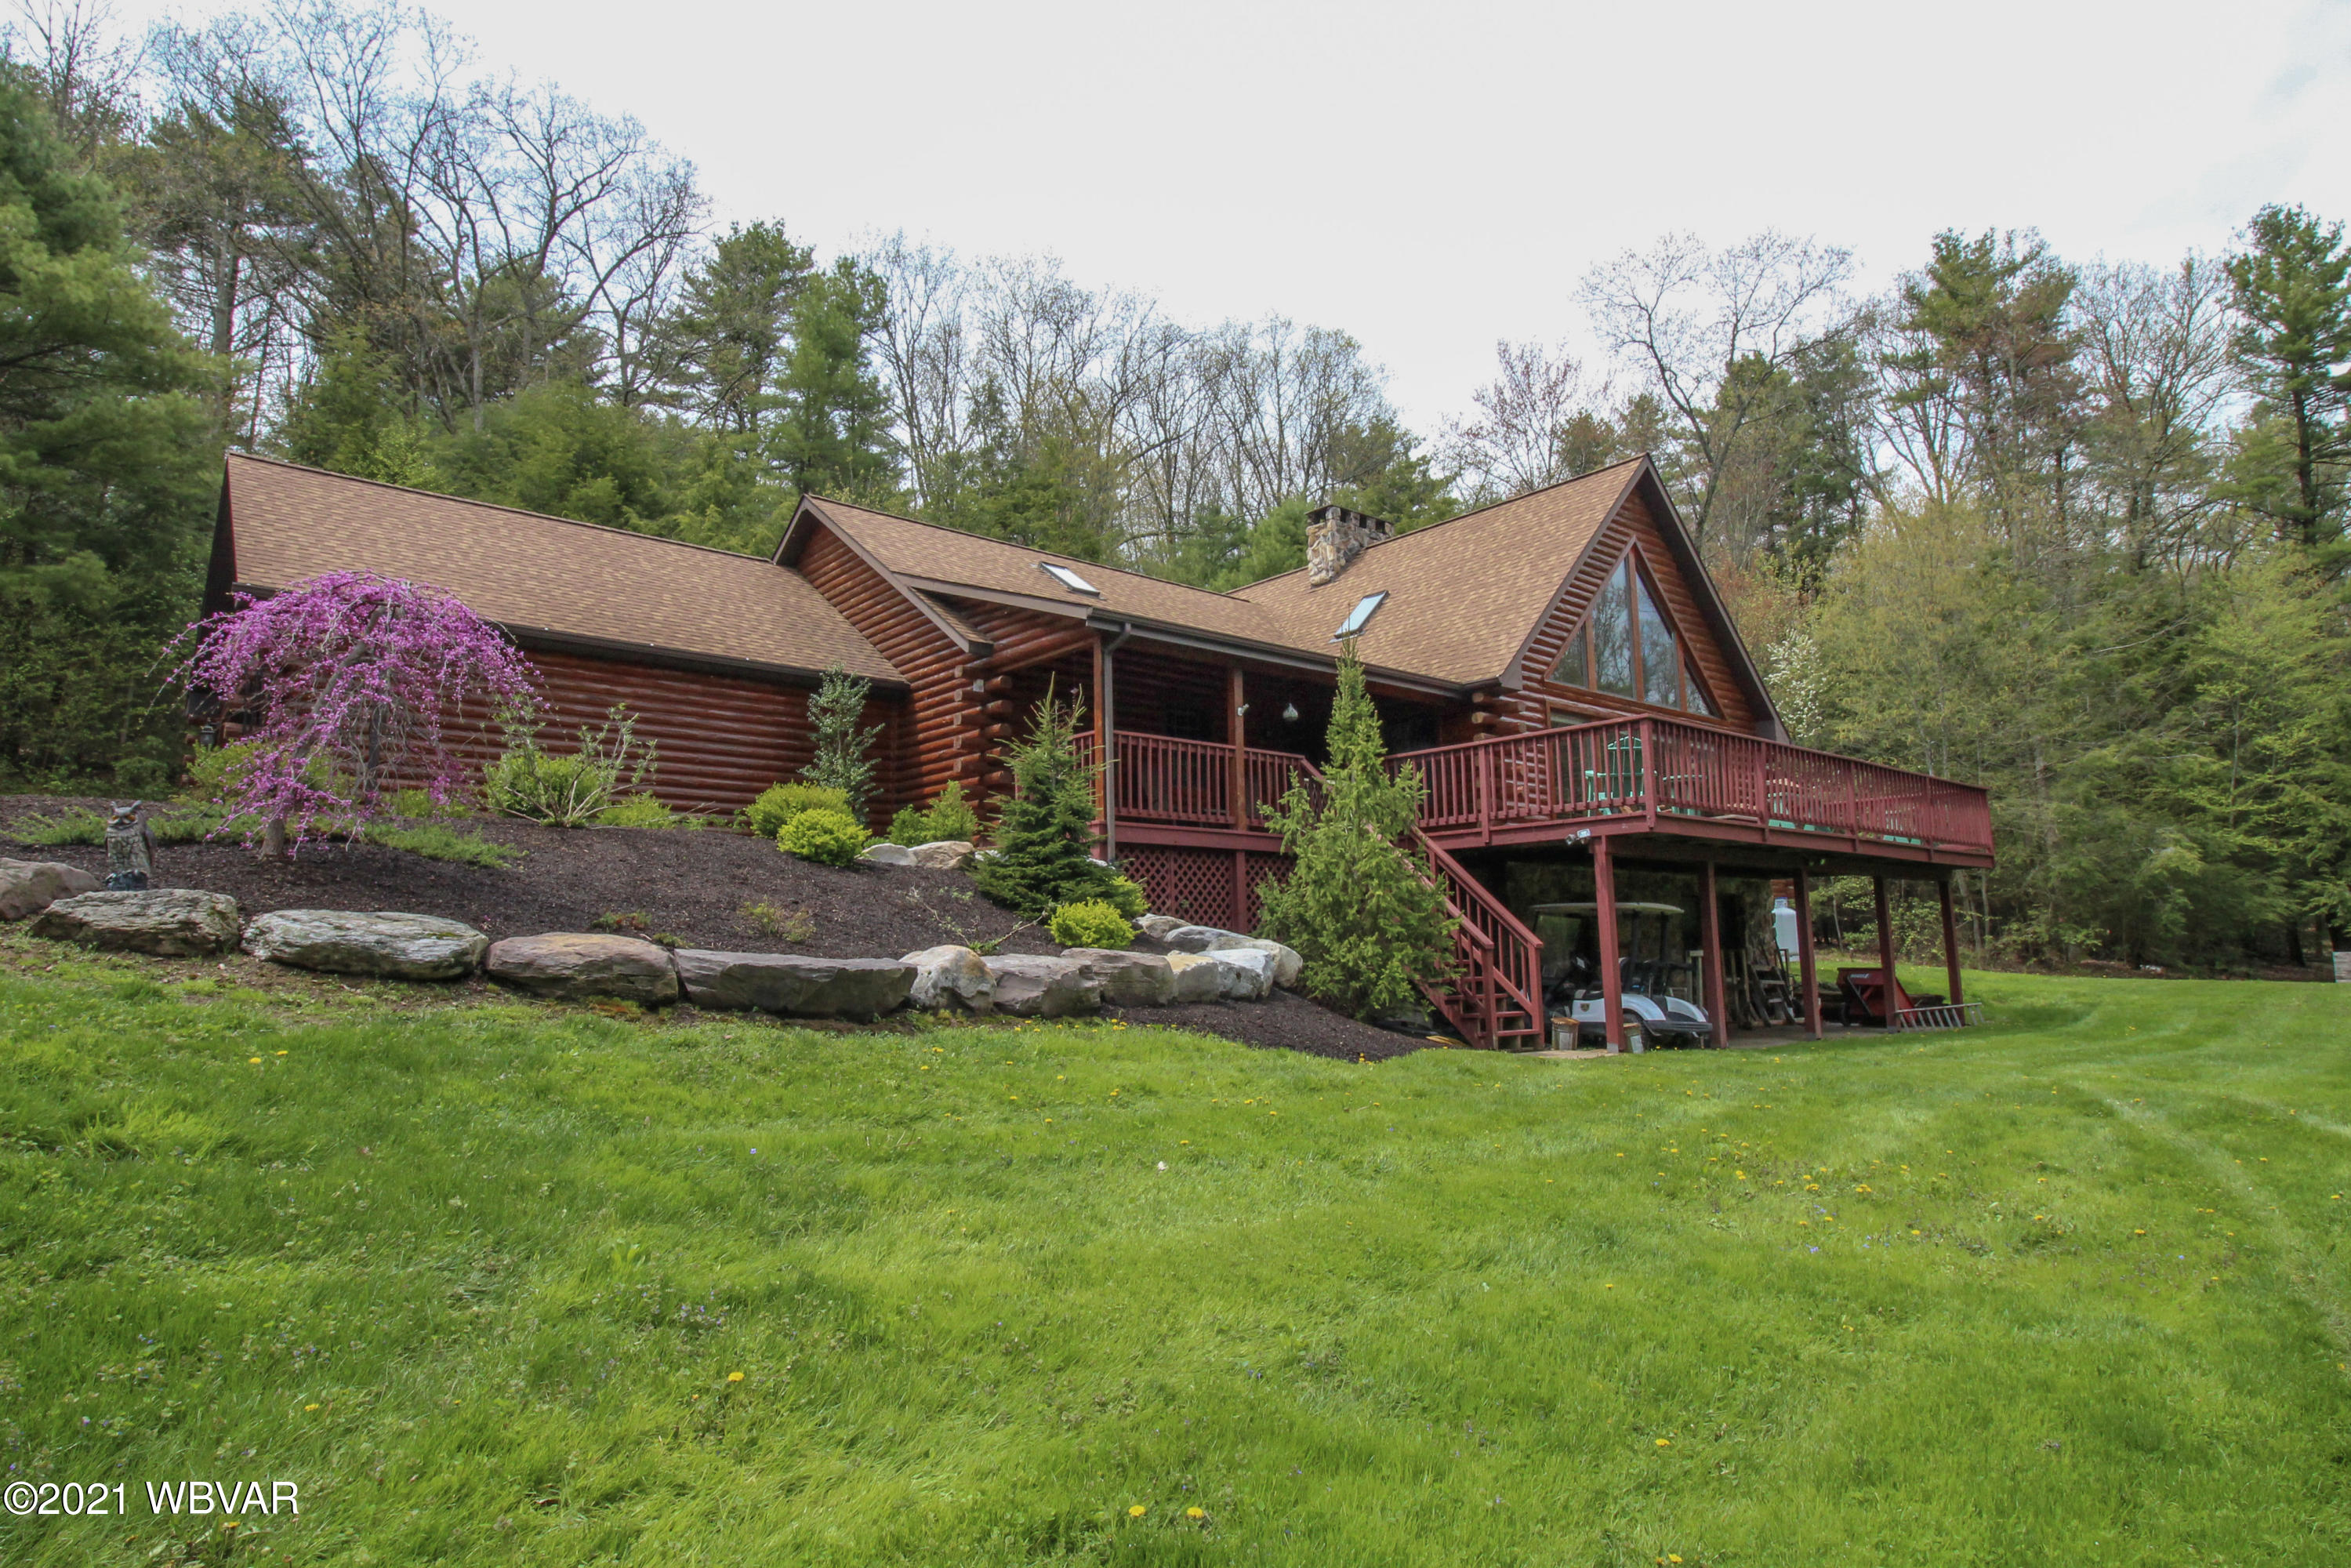 4767 ROSE VALLEY ROAD, Trout Run, PA 17771, 4 Bedrooms Bedrooms, ,3.5 BathroomsBathrooms,Residential,For sale,ROSE VALLEY,WB-92457